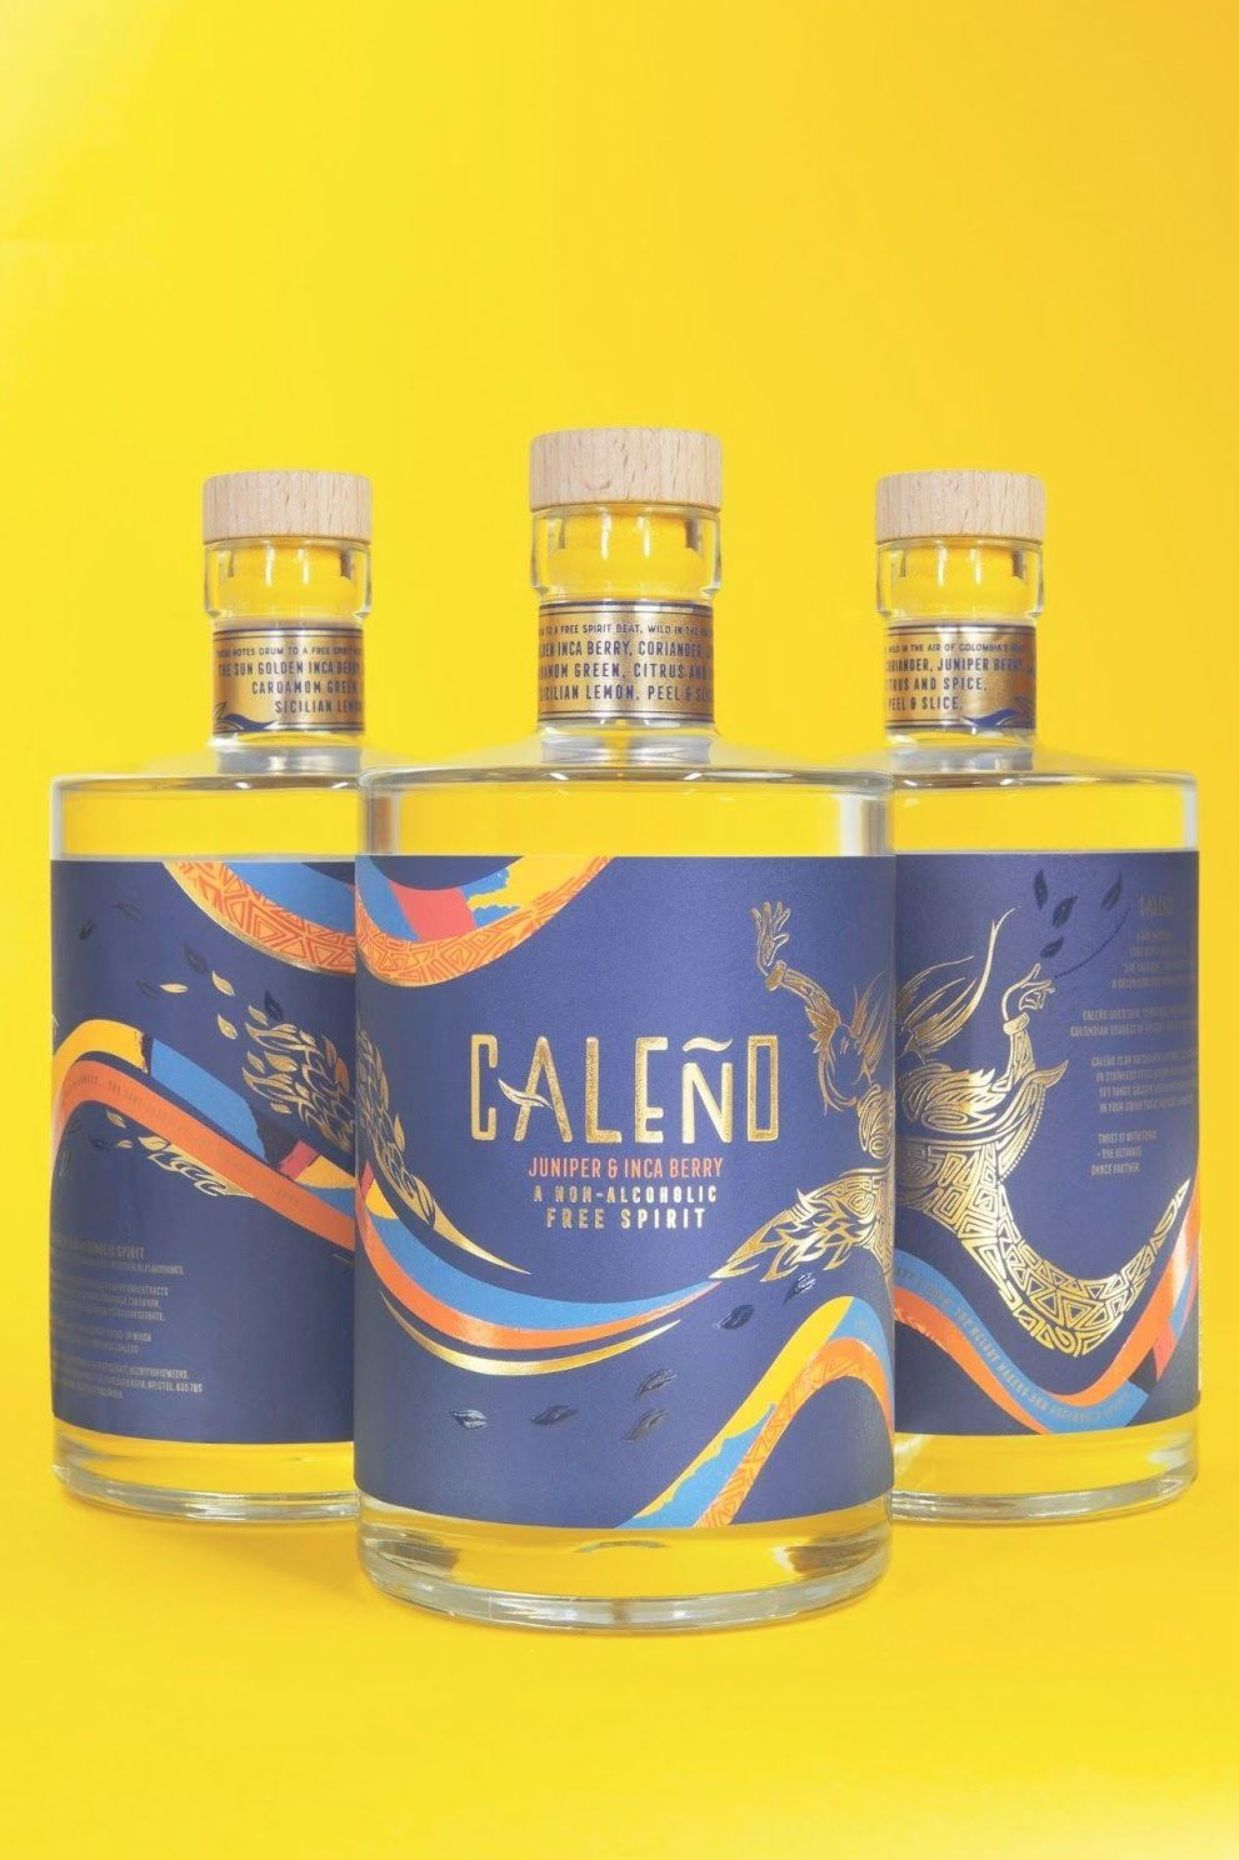 Caleño a new, nonalcoholic spirit brand on Packaging of